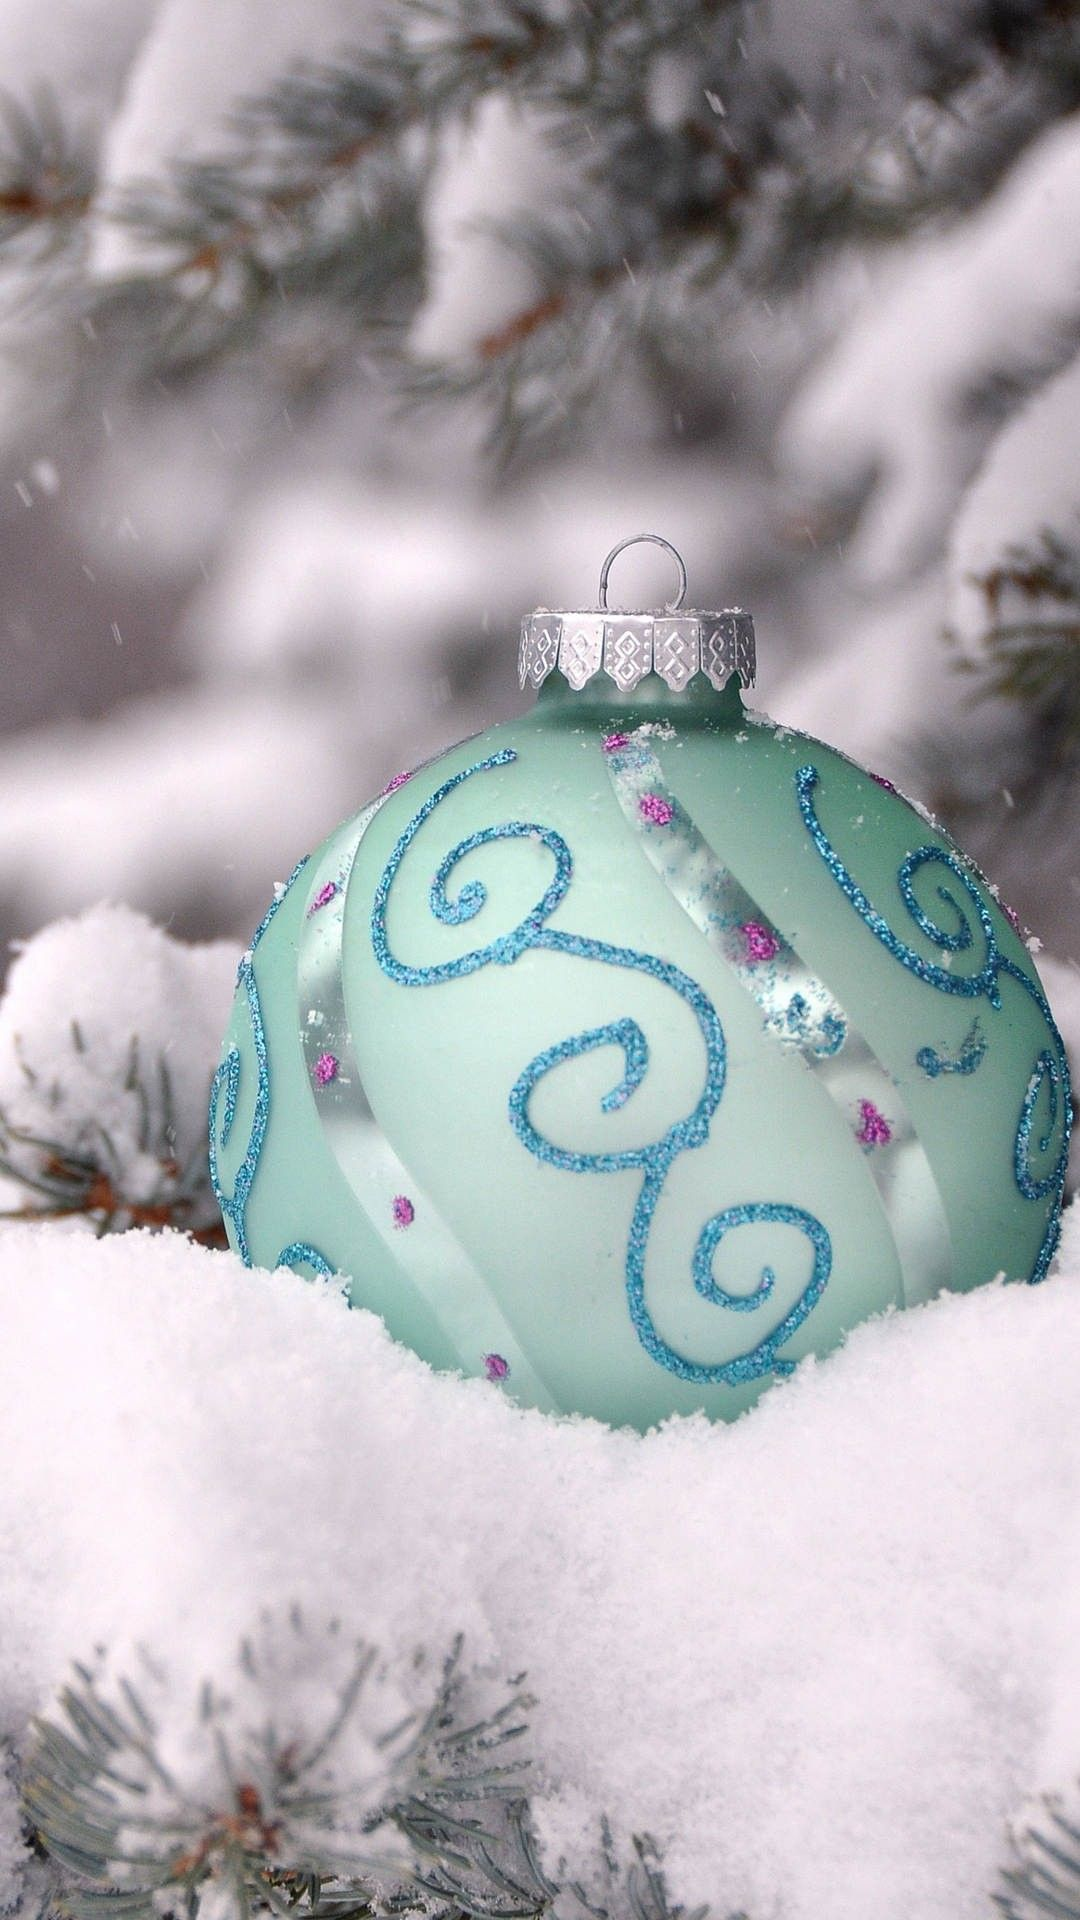 Themed christmas ornaments - Frozen Themed Christmas Tree Floating Ornament Iphone 6 Plus Wallpaper Tree Snow Closeup